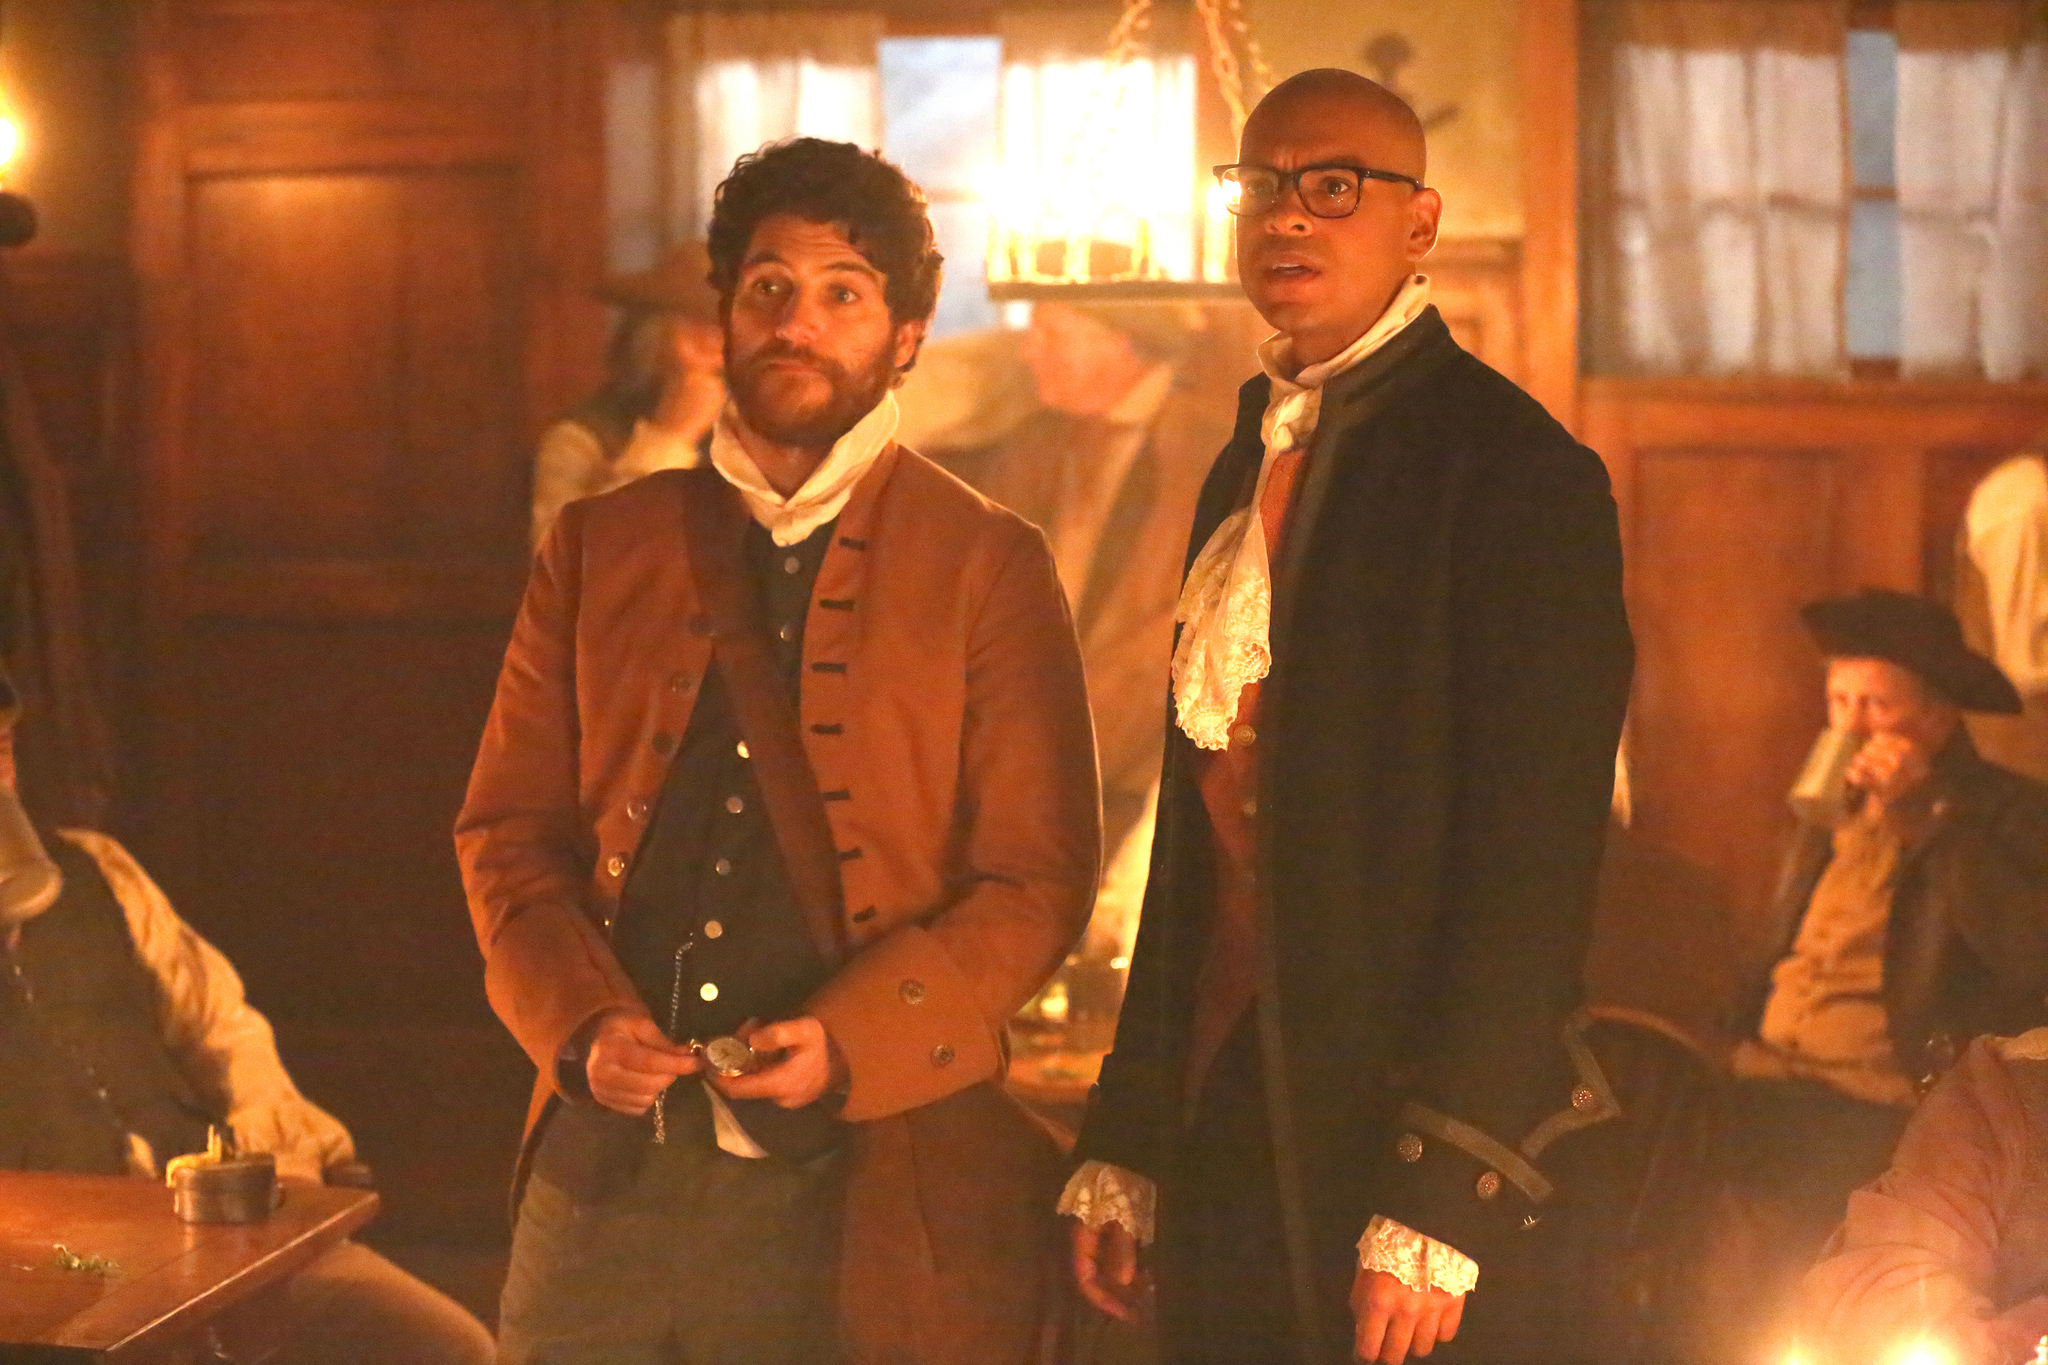 Adam Pally and Yassir Lester in Making History (2017)